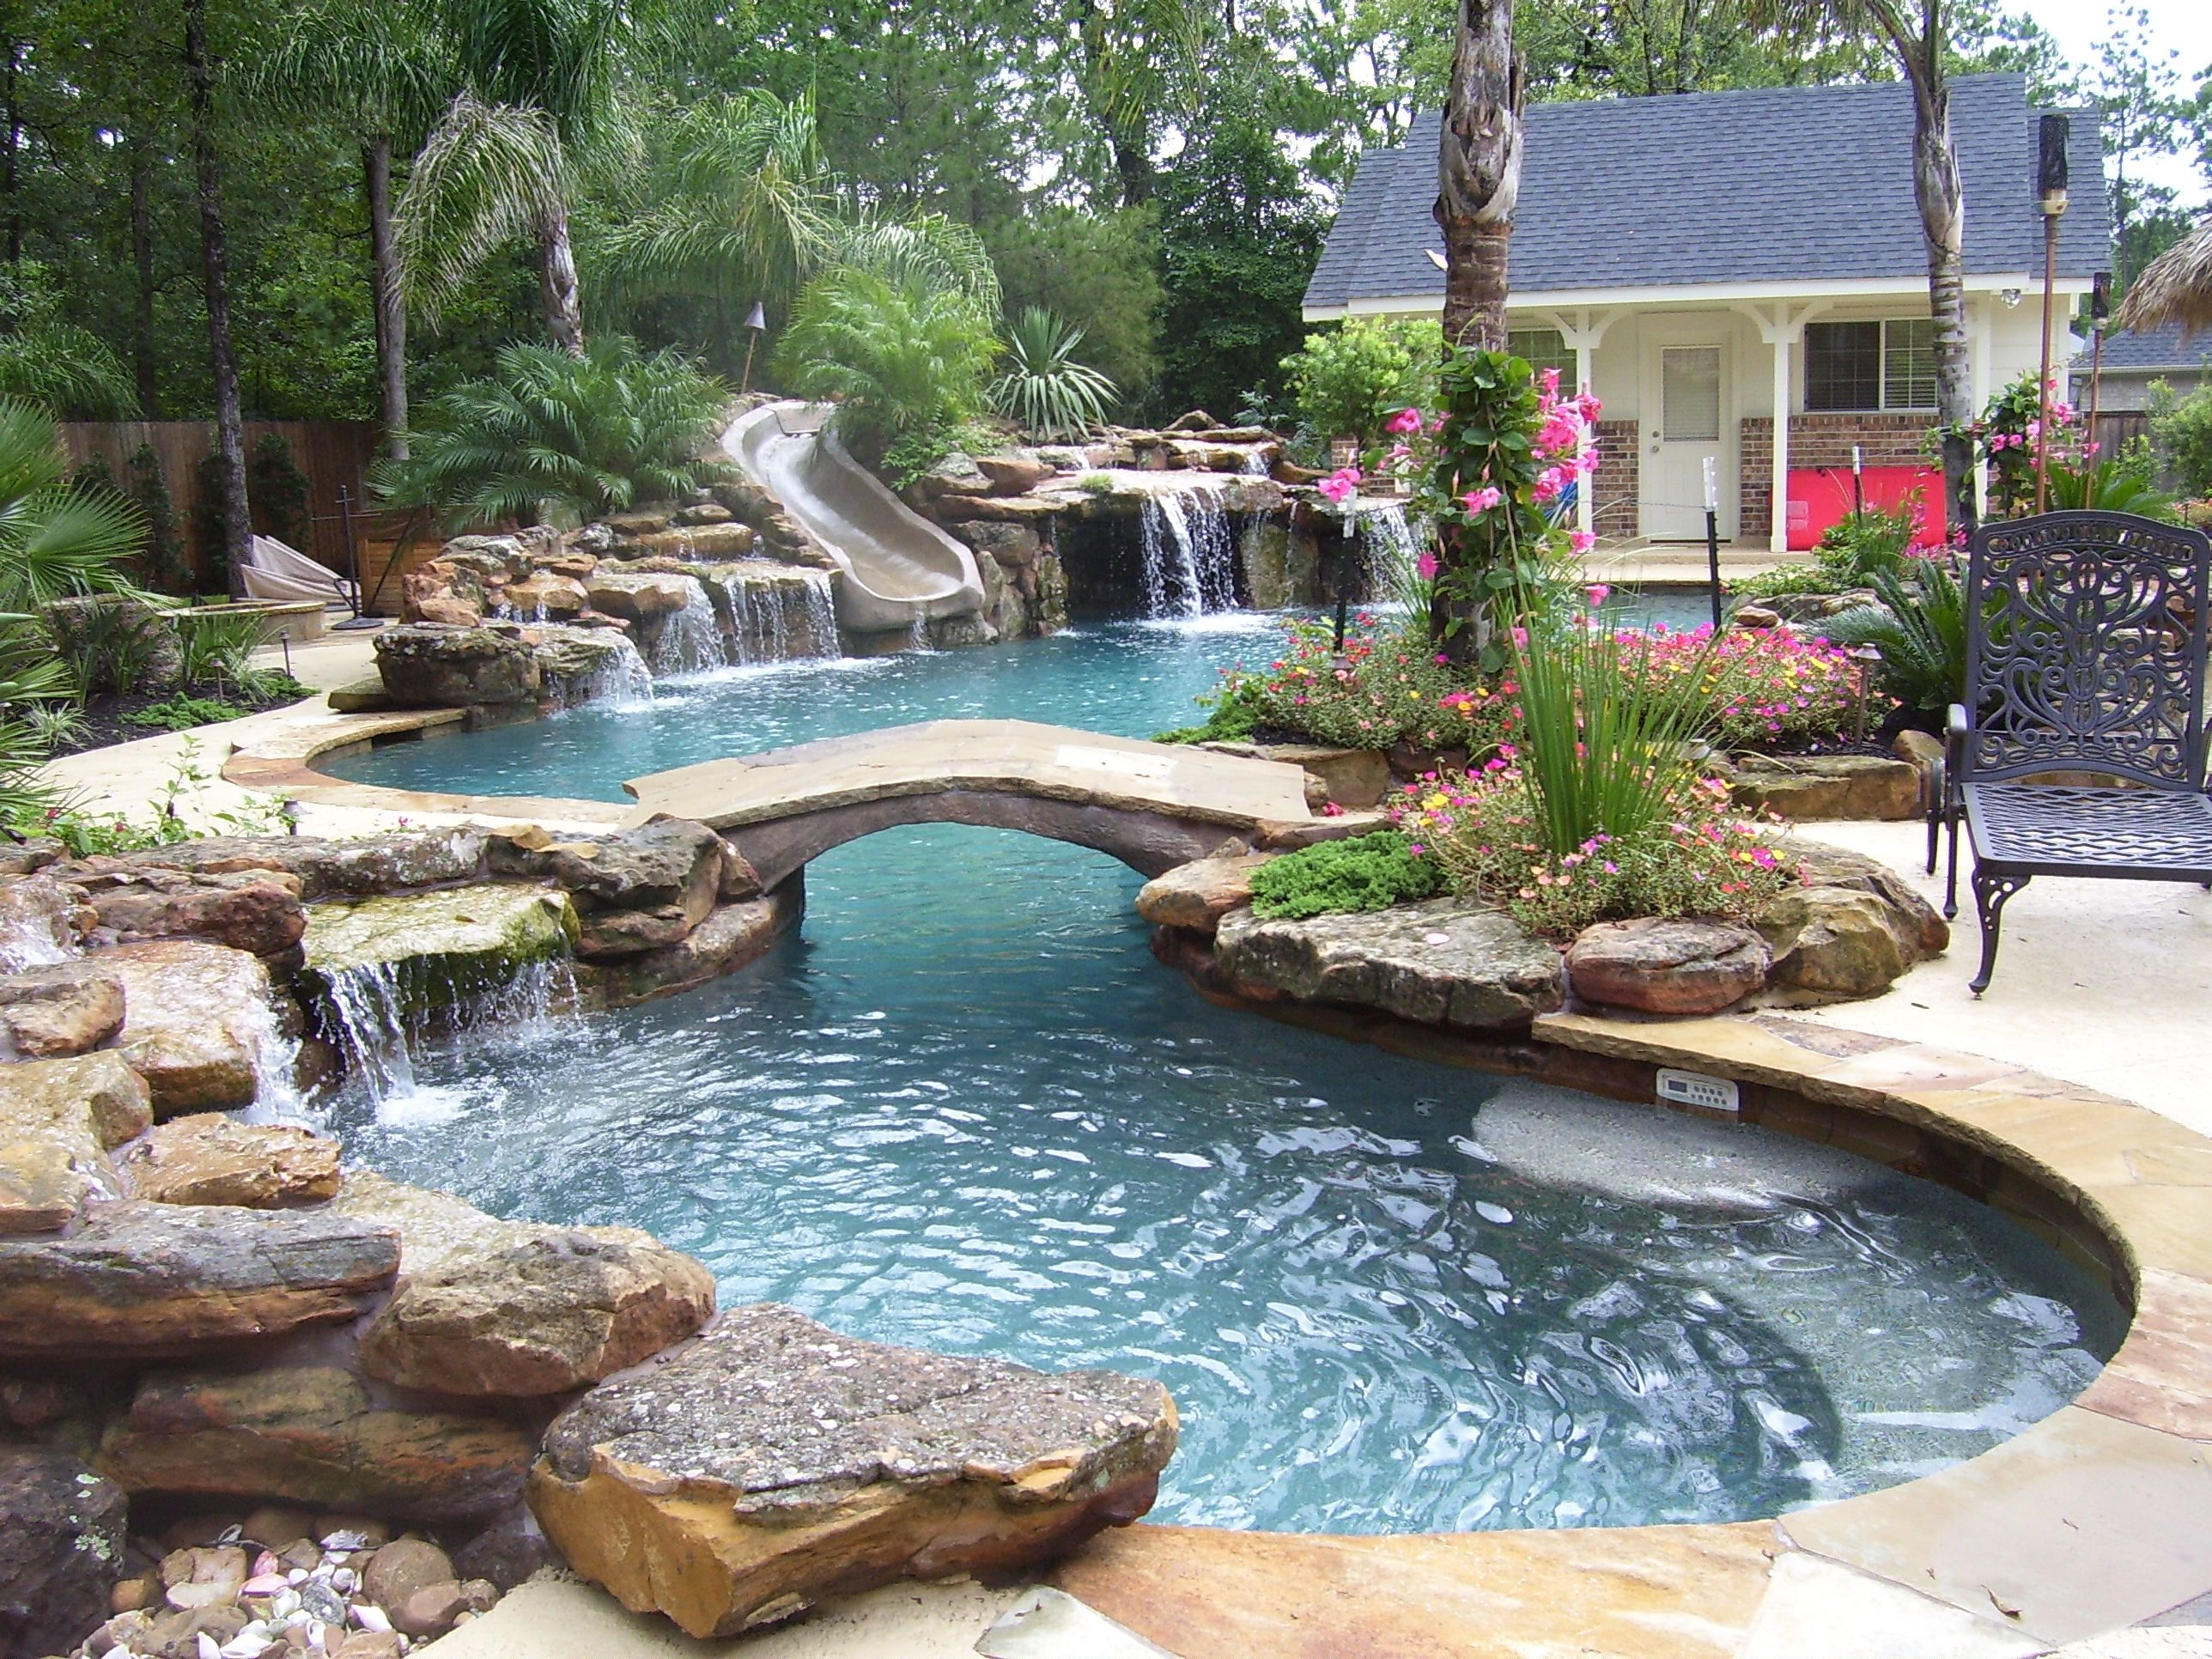 Best Backyard Paradise Images On Pinterest Dream Pools - Backyard paradise ideas